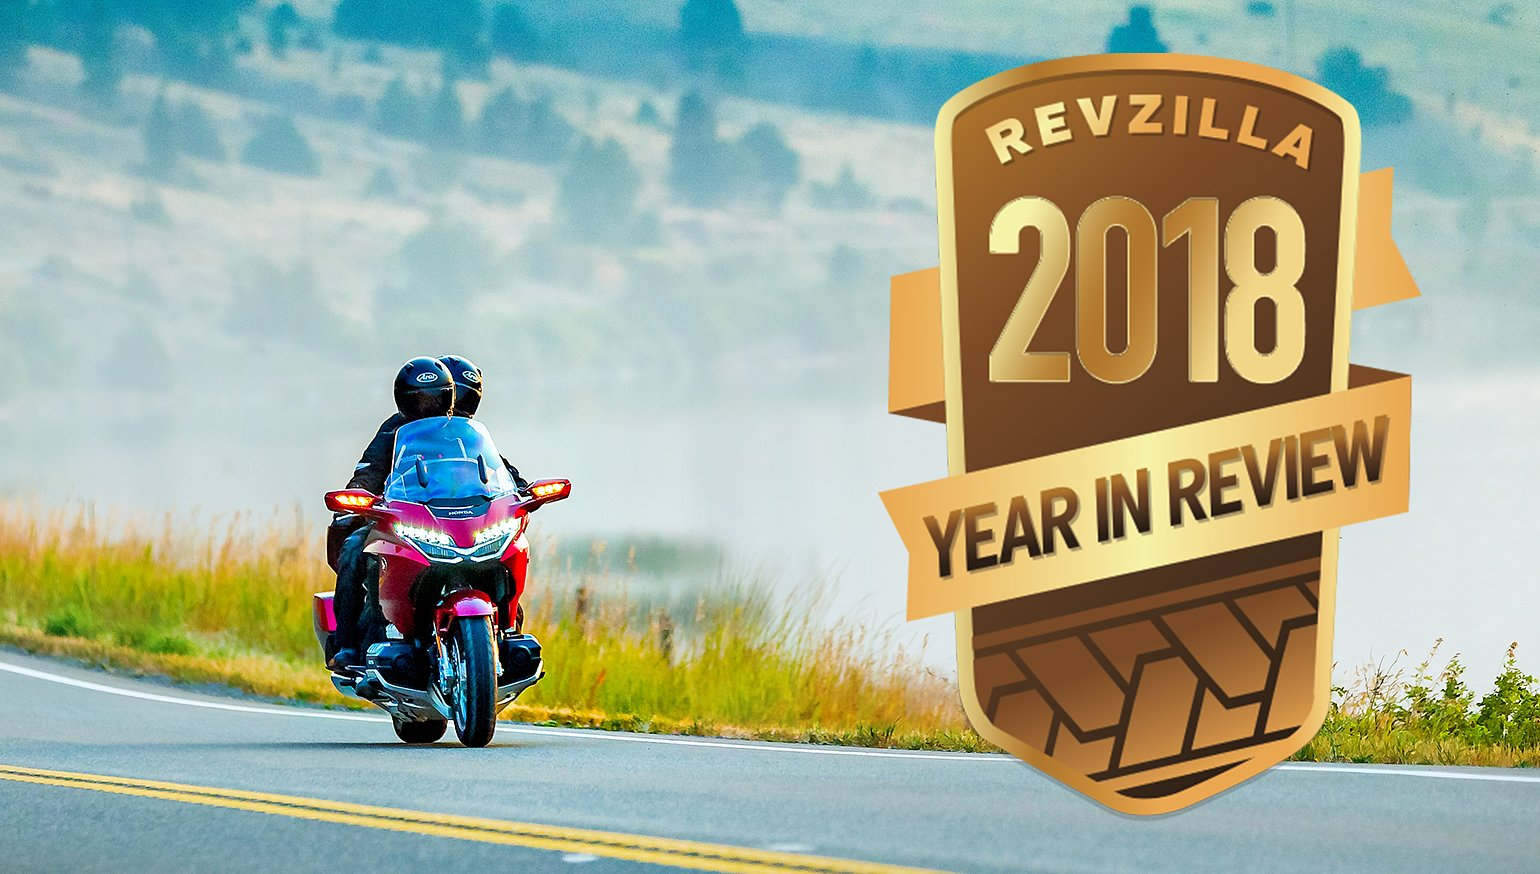 Our favorite motorcycles of 2018 - RevZilla